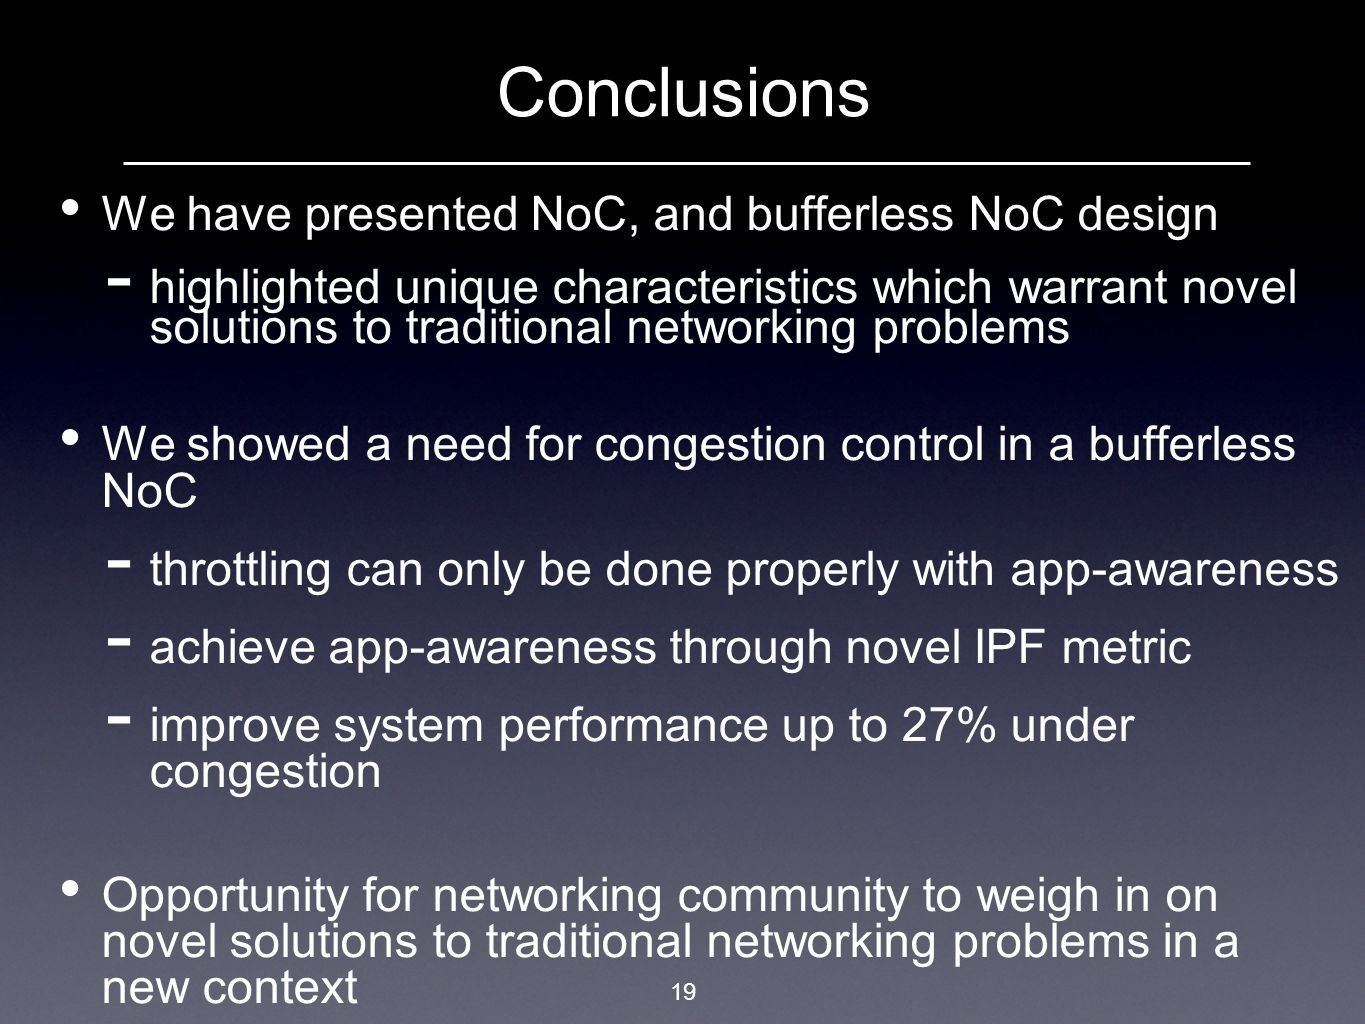 19 Conclusions We have presented NoC, and bufferless NoC design highlighted unique characteristics which warrant novel solutions to traditional networ